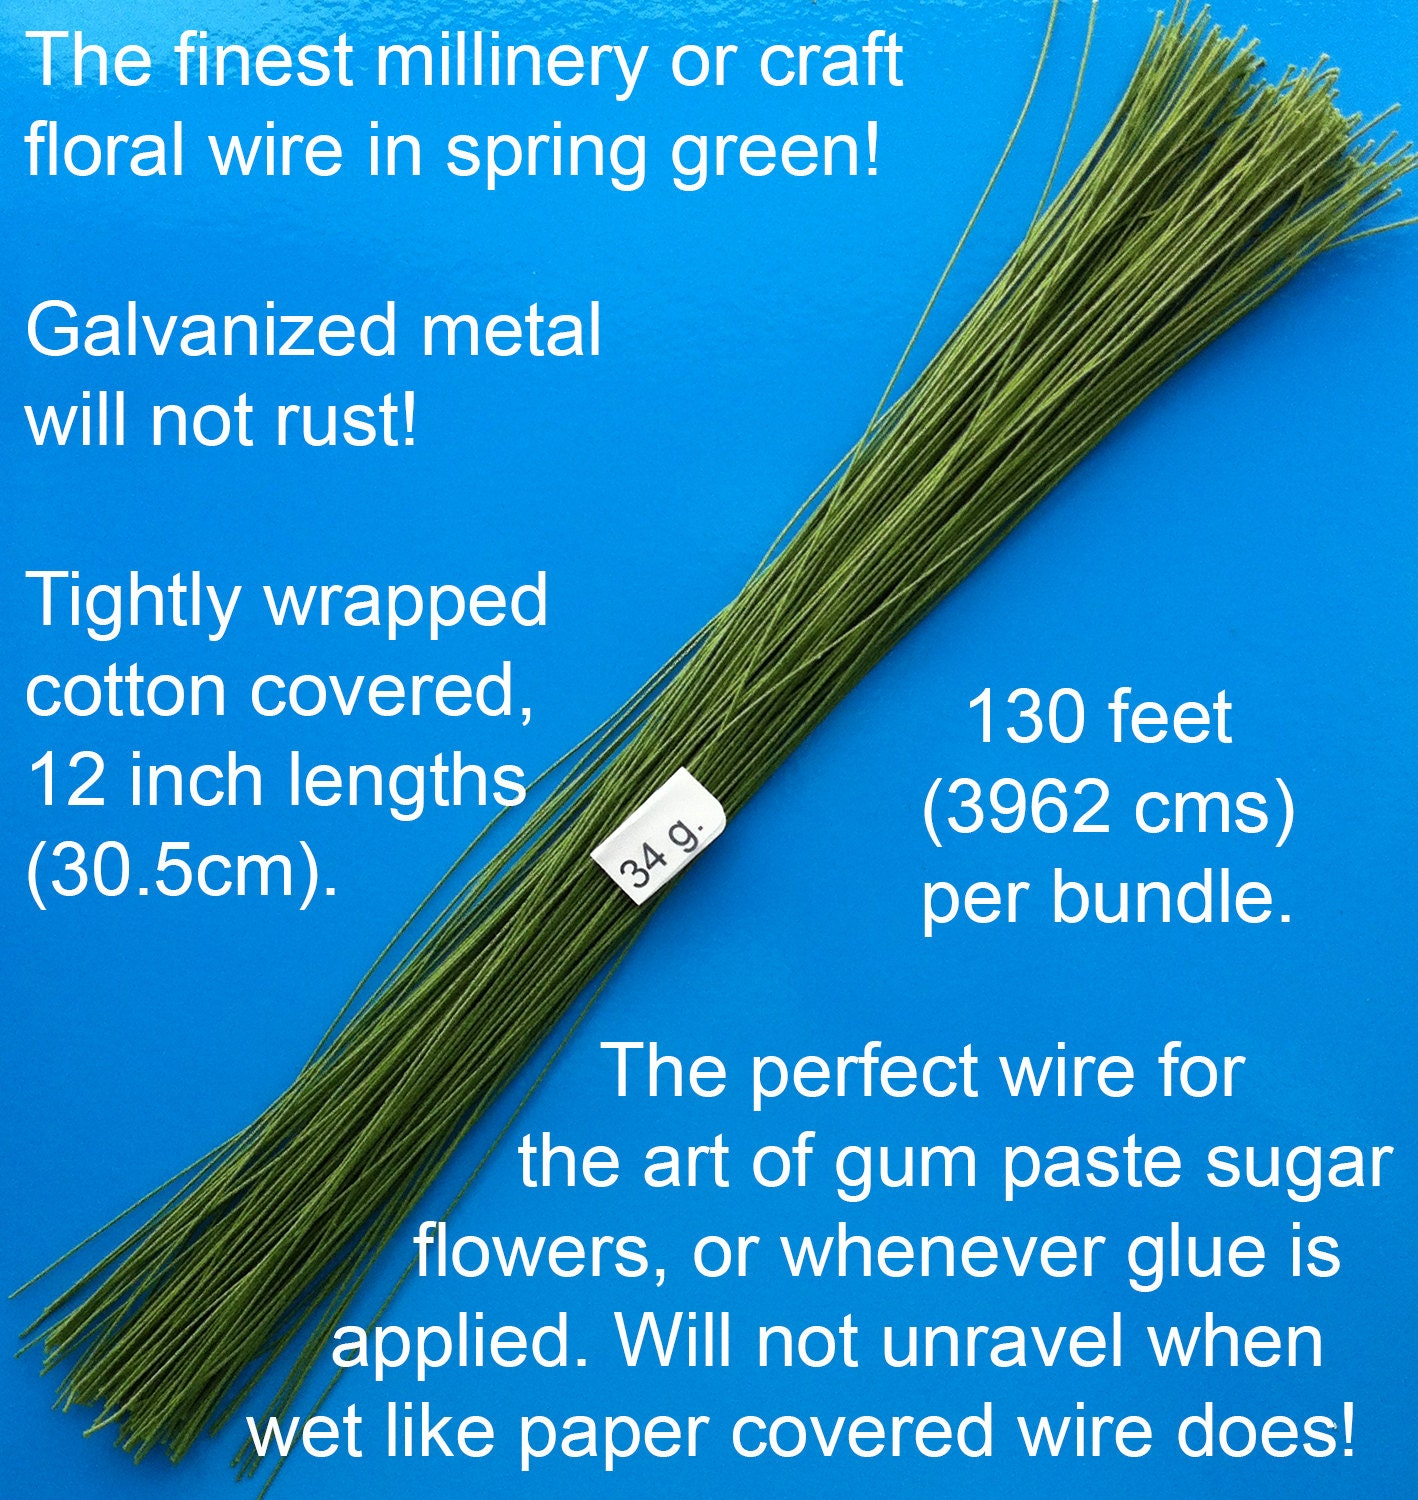 34 Gauge Green Cotton Covered Floral Wire - 130 feet per bundle ...